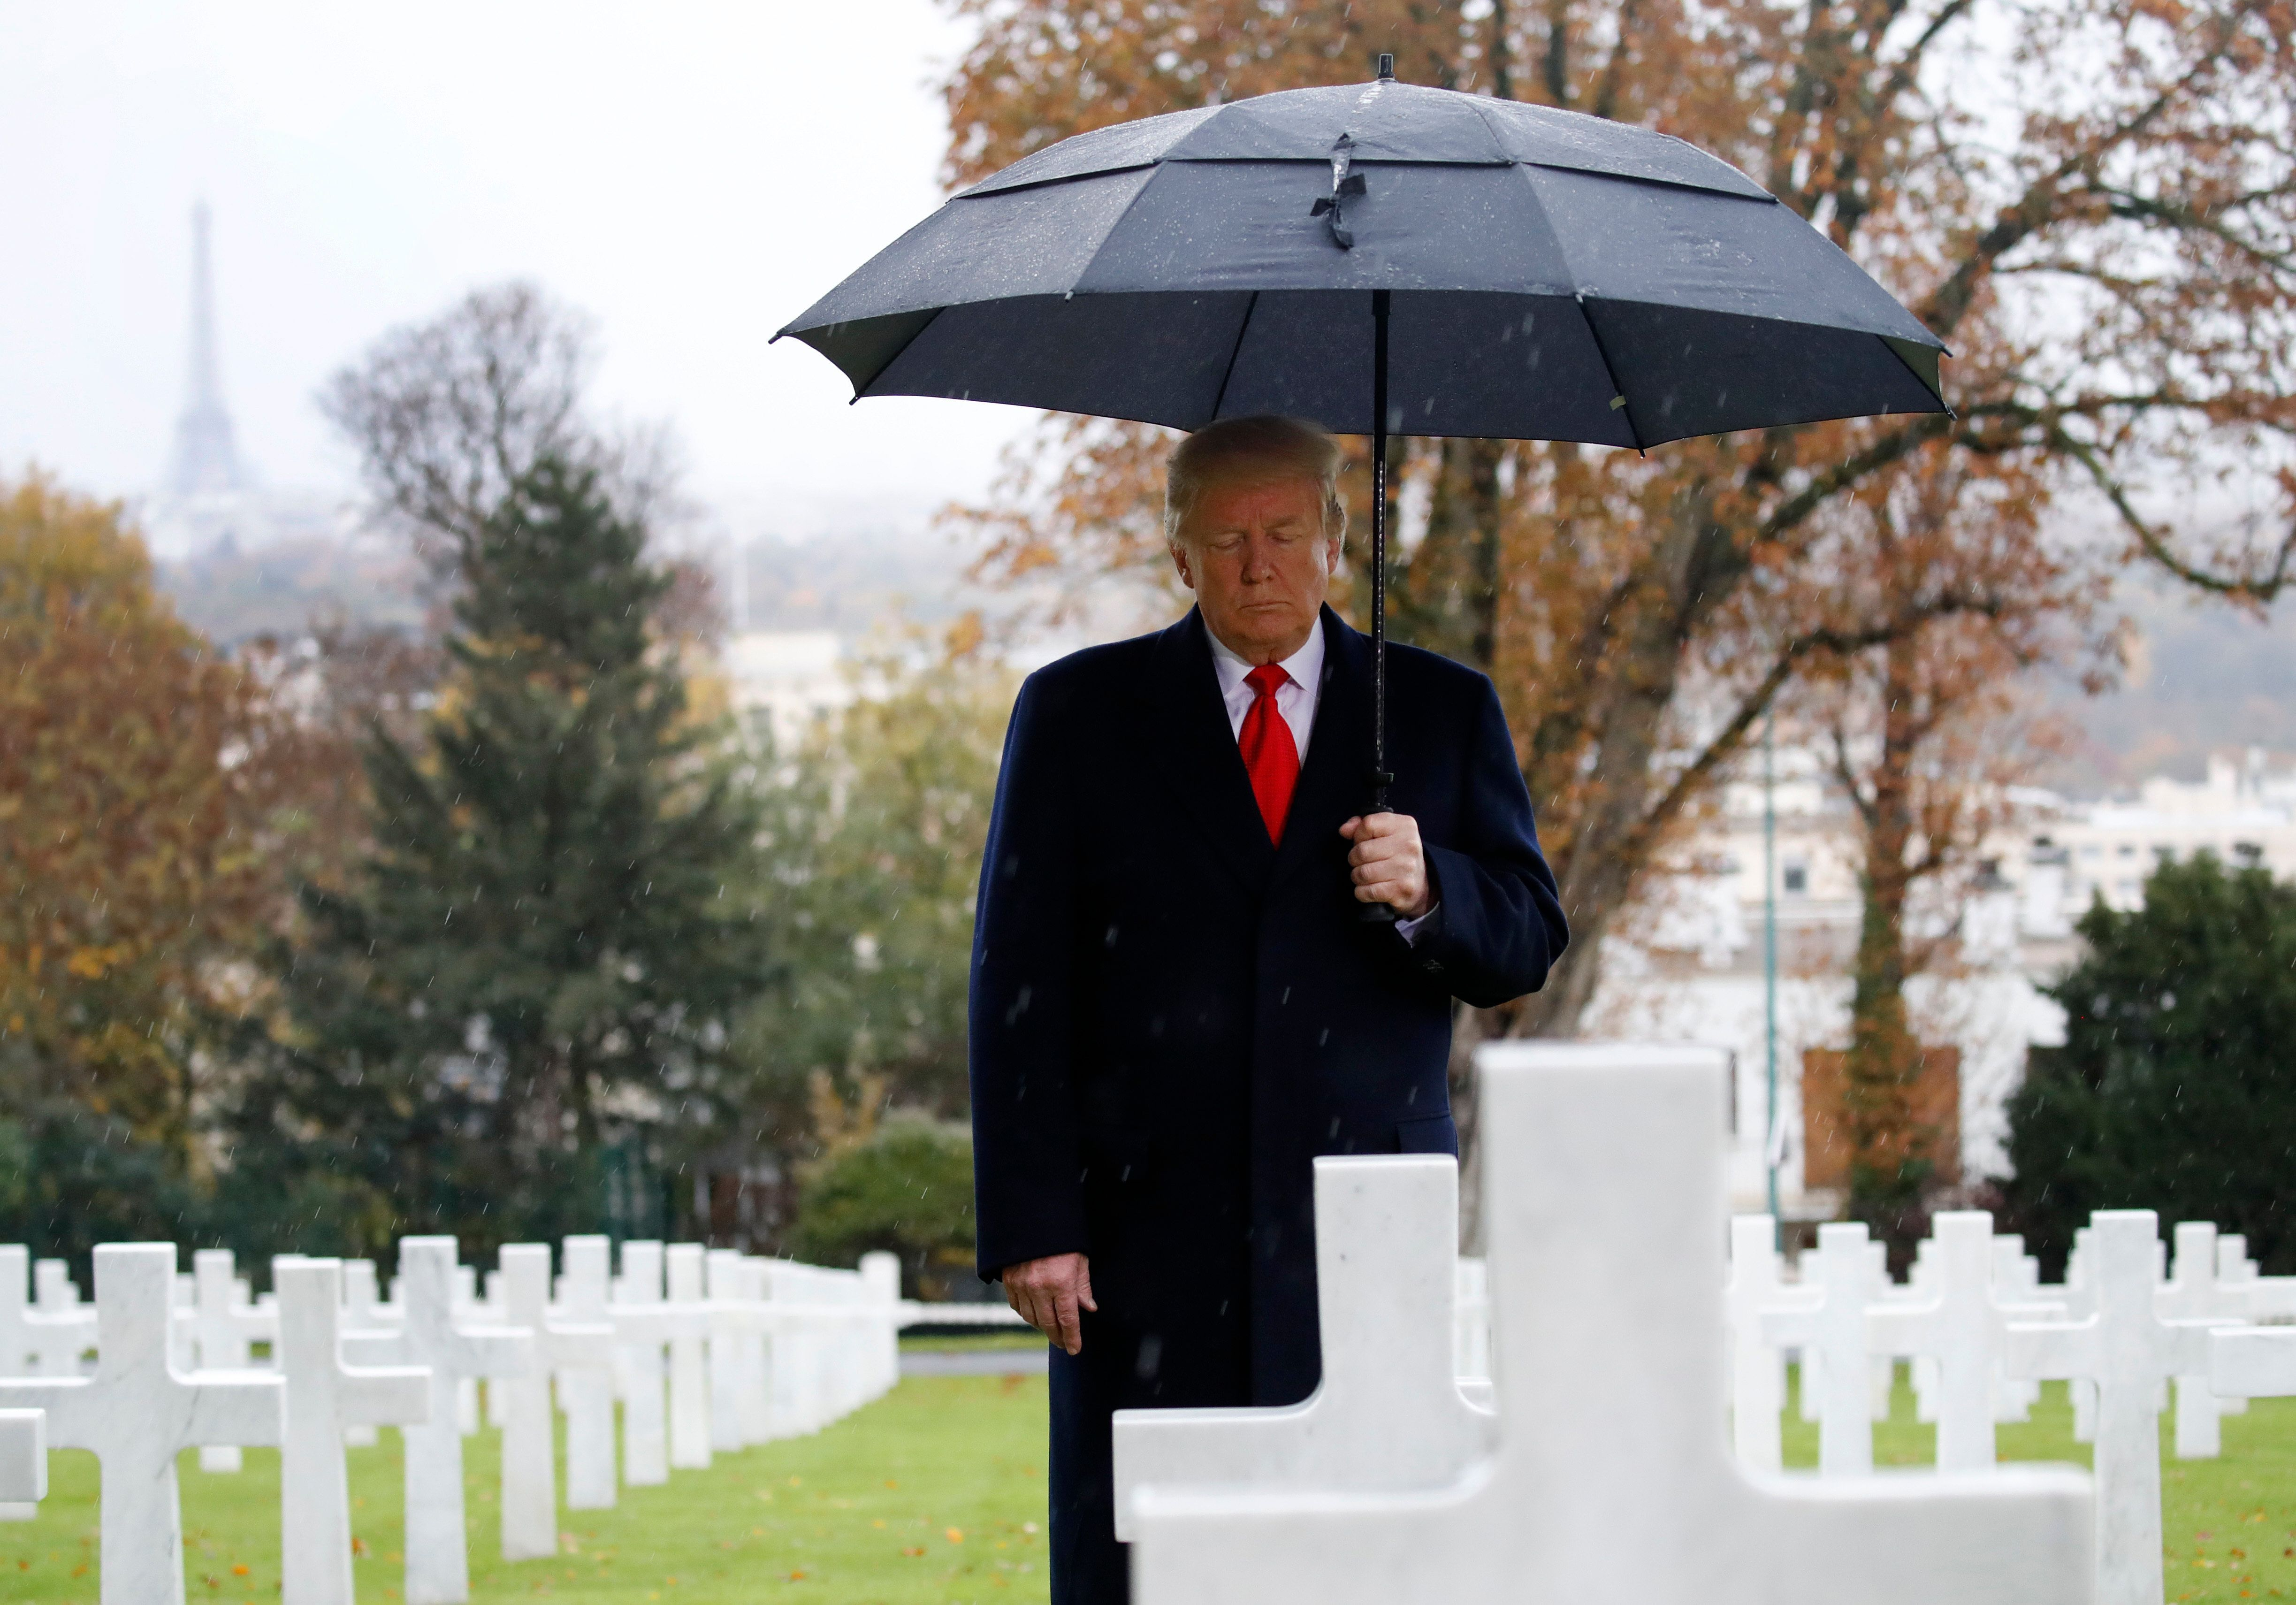 President Donald Trump stands amongst the headstones during an American Commemoration Ceremony, Sunday Nov. 11, 2018, at Suresnes American Cemetery near Paris. Trump is attending centennial commemorations in Paris this weekend to mark the Armistice that ended World War I. (AP Photo/Jacquelyn Martin)